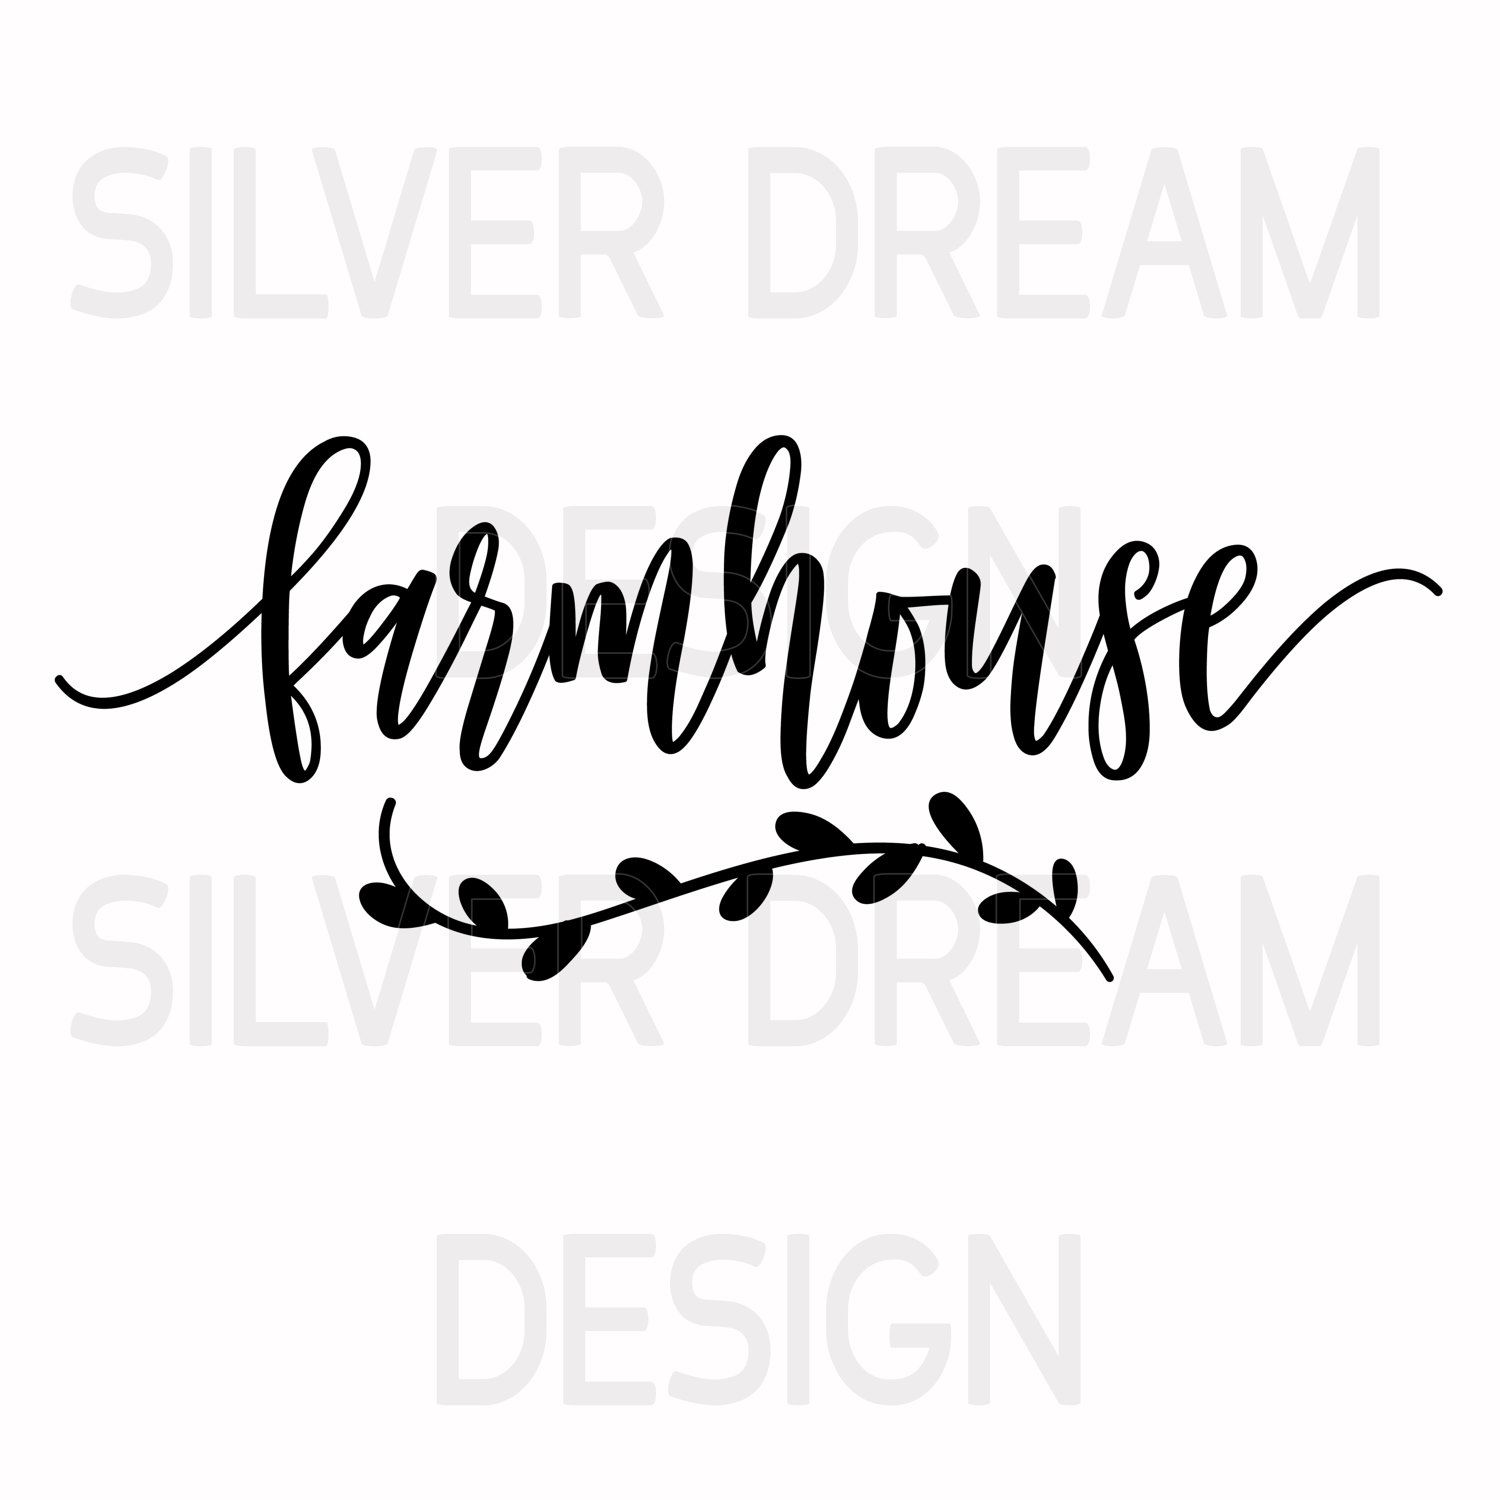 Farmhouse Svg Farmhouse Sign Svg Kitchen Sign Svg Wood Sign Svg Farmhouse Font Barn Wood Signs Silhouette Projects